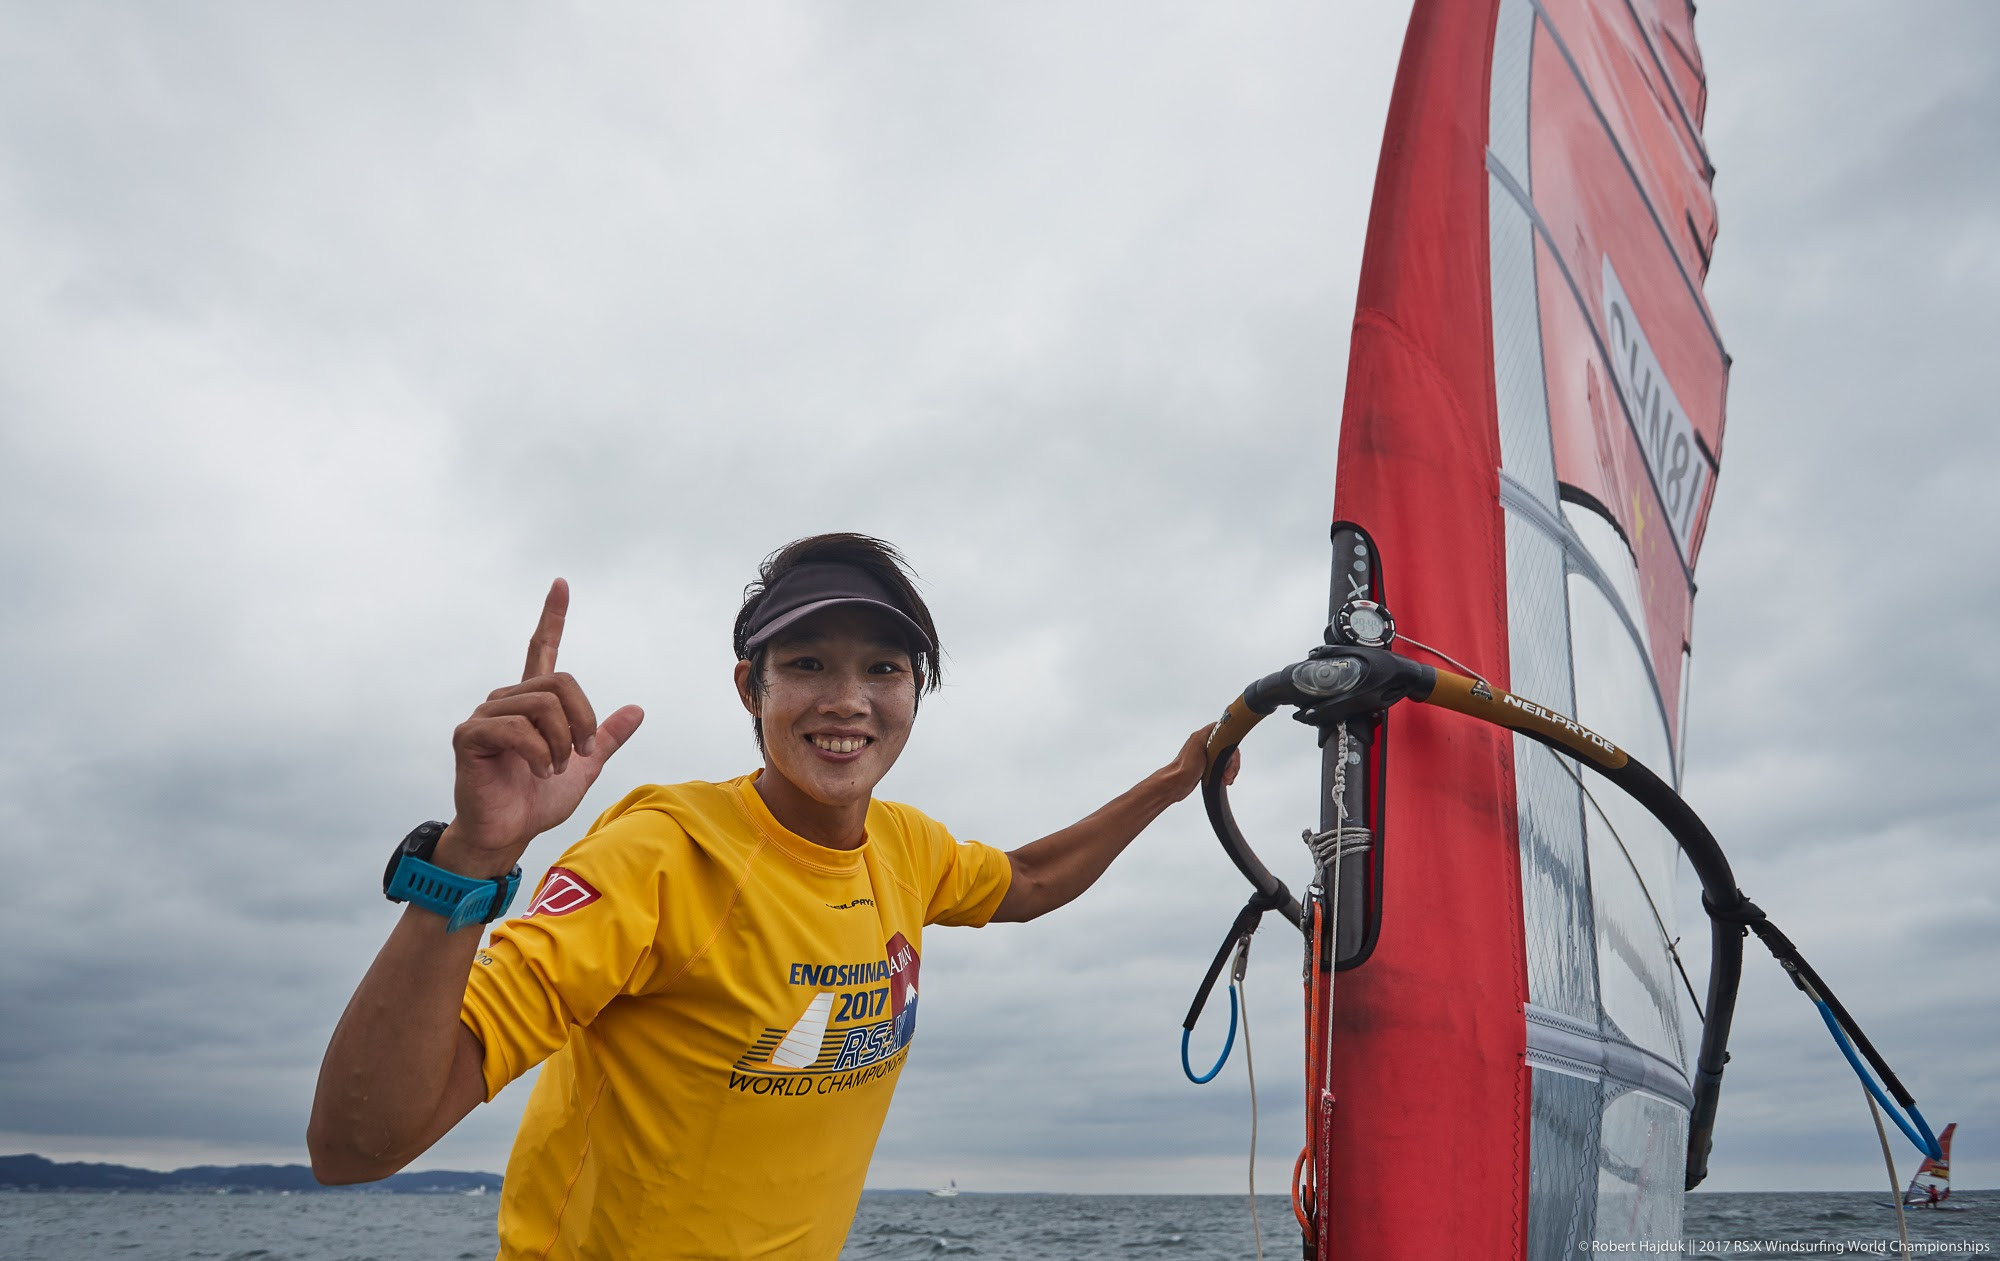 China dominate medal standings at conclusion of RS:X Windsurfing World Championships